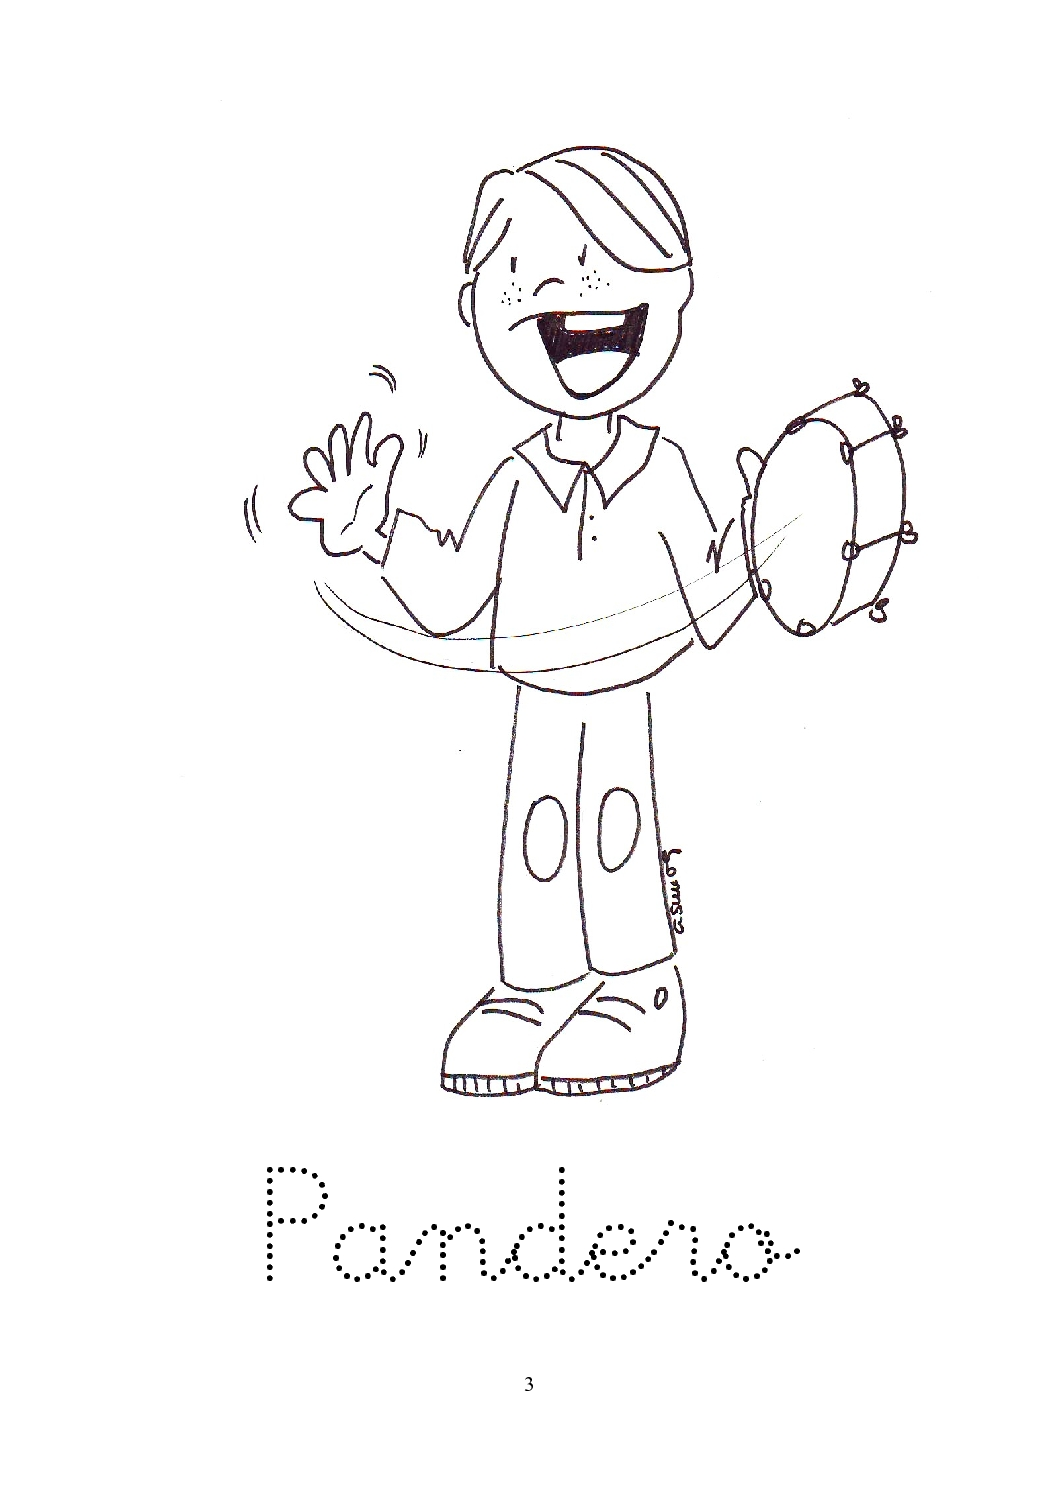 maracas coloring pages kids - photo#34